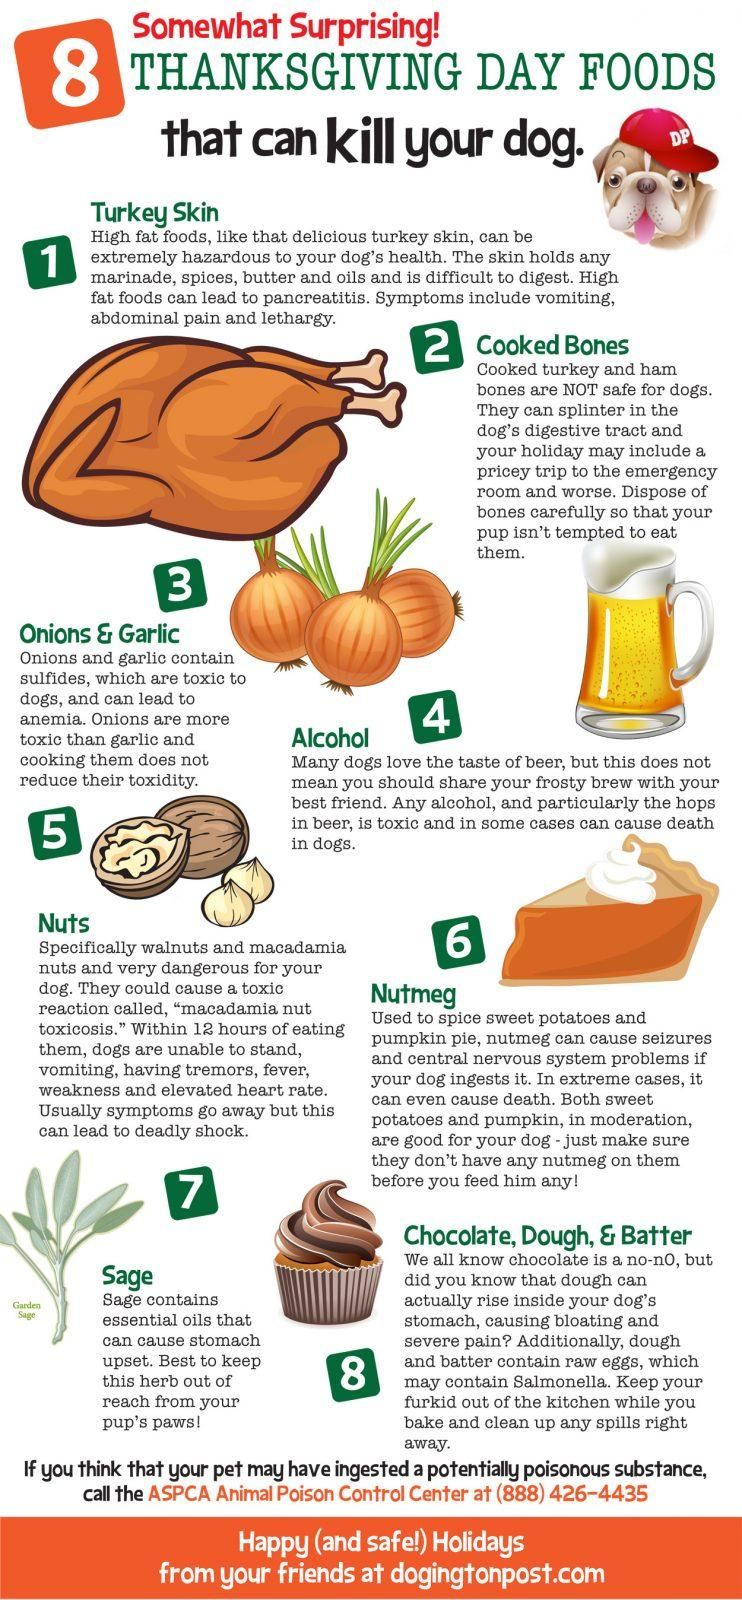 Harmful foods for your dog save one soul animal rescue for What do you eat on thanksgiving list